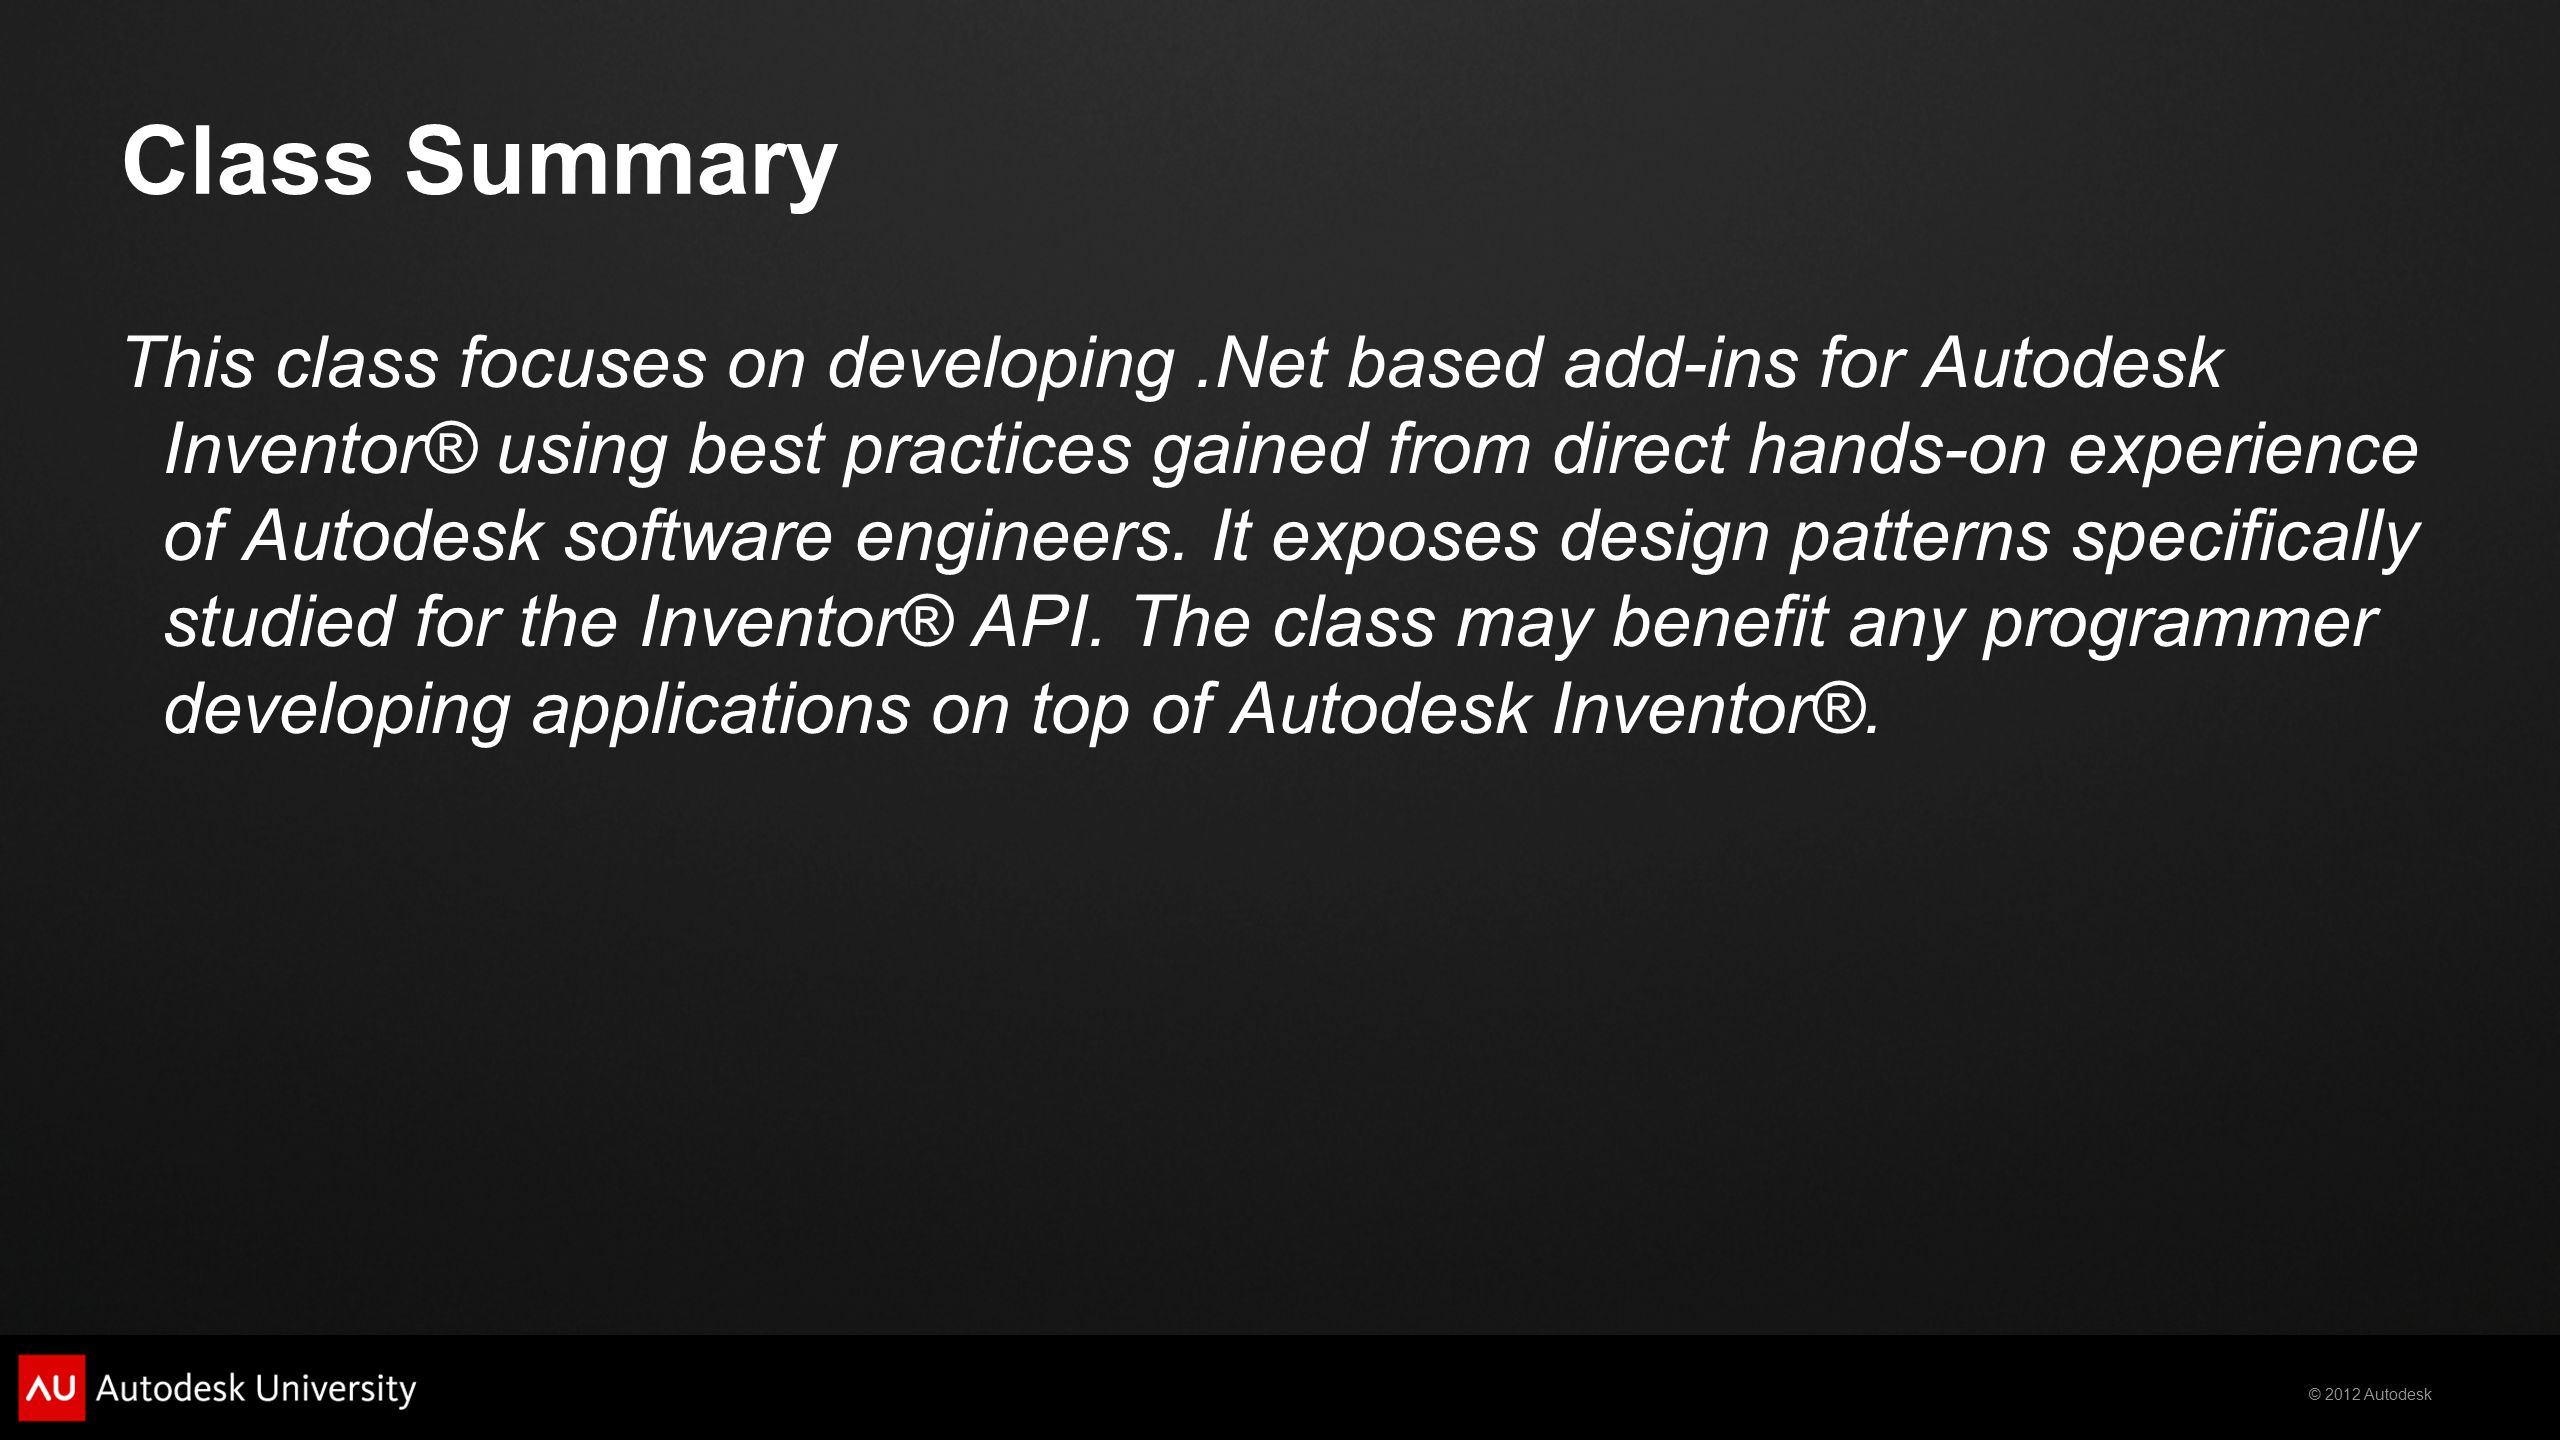 © 2012 Autodesk Autodesk Developer Network  Access to almost all Autodesk software and SDK's  Includes early access to beta software  Members-only website with thousands of technical articles  Unlimited technical support  Product direction through conferences  Marketing benefits  Exposure on autodesk.com  Promotional opportunities  Up to three free API training classes  Based on user level www.autodesk.com/joinadn